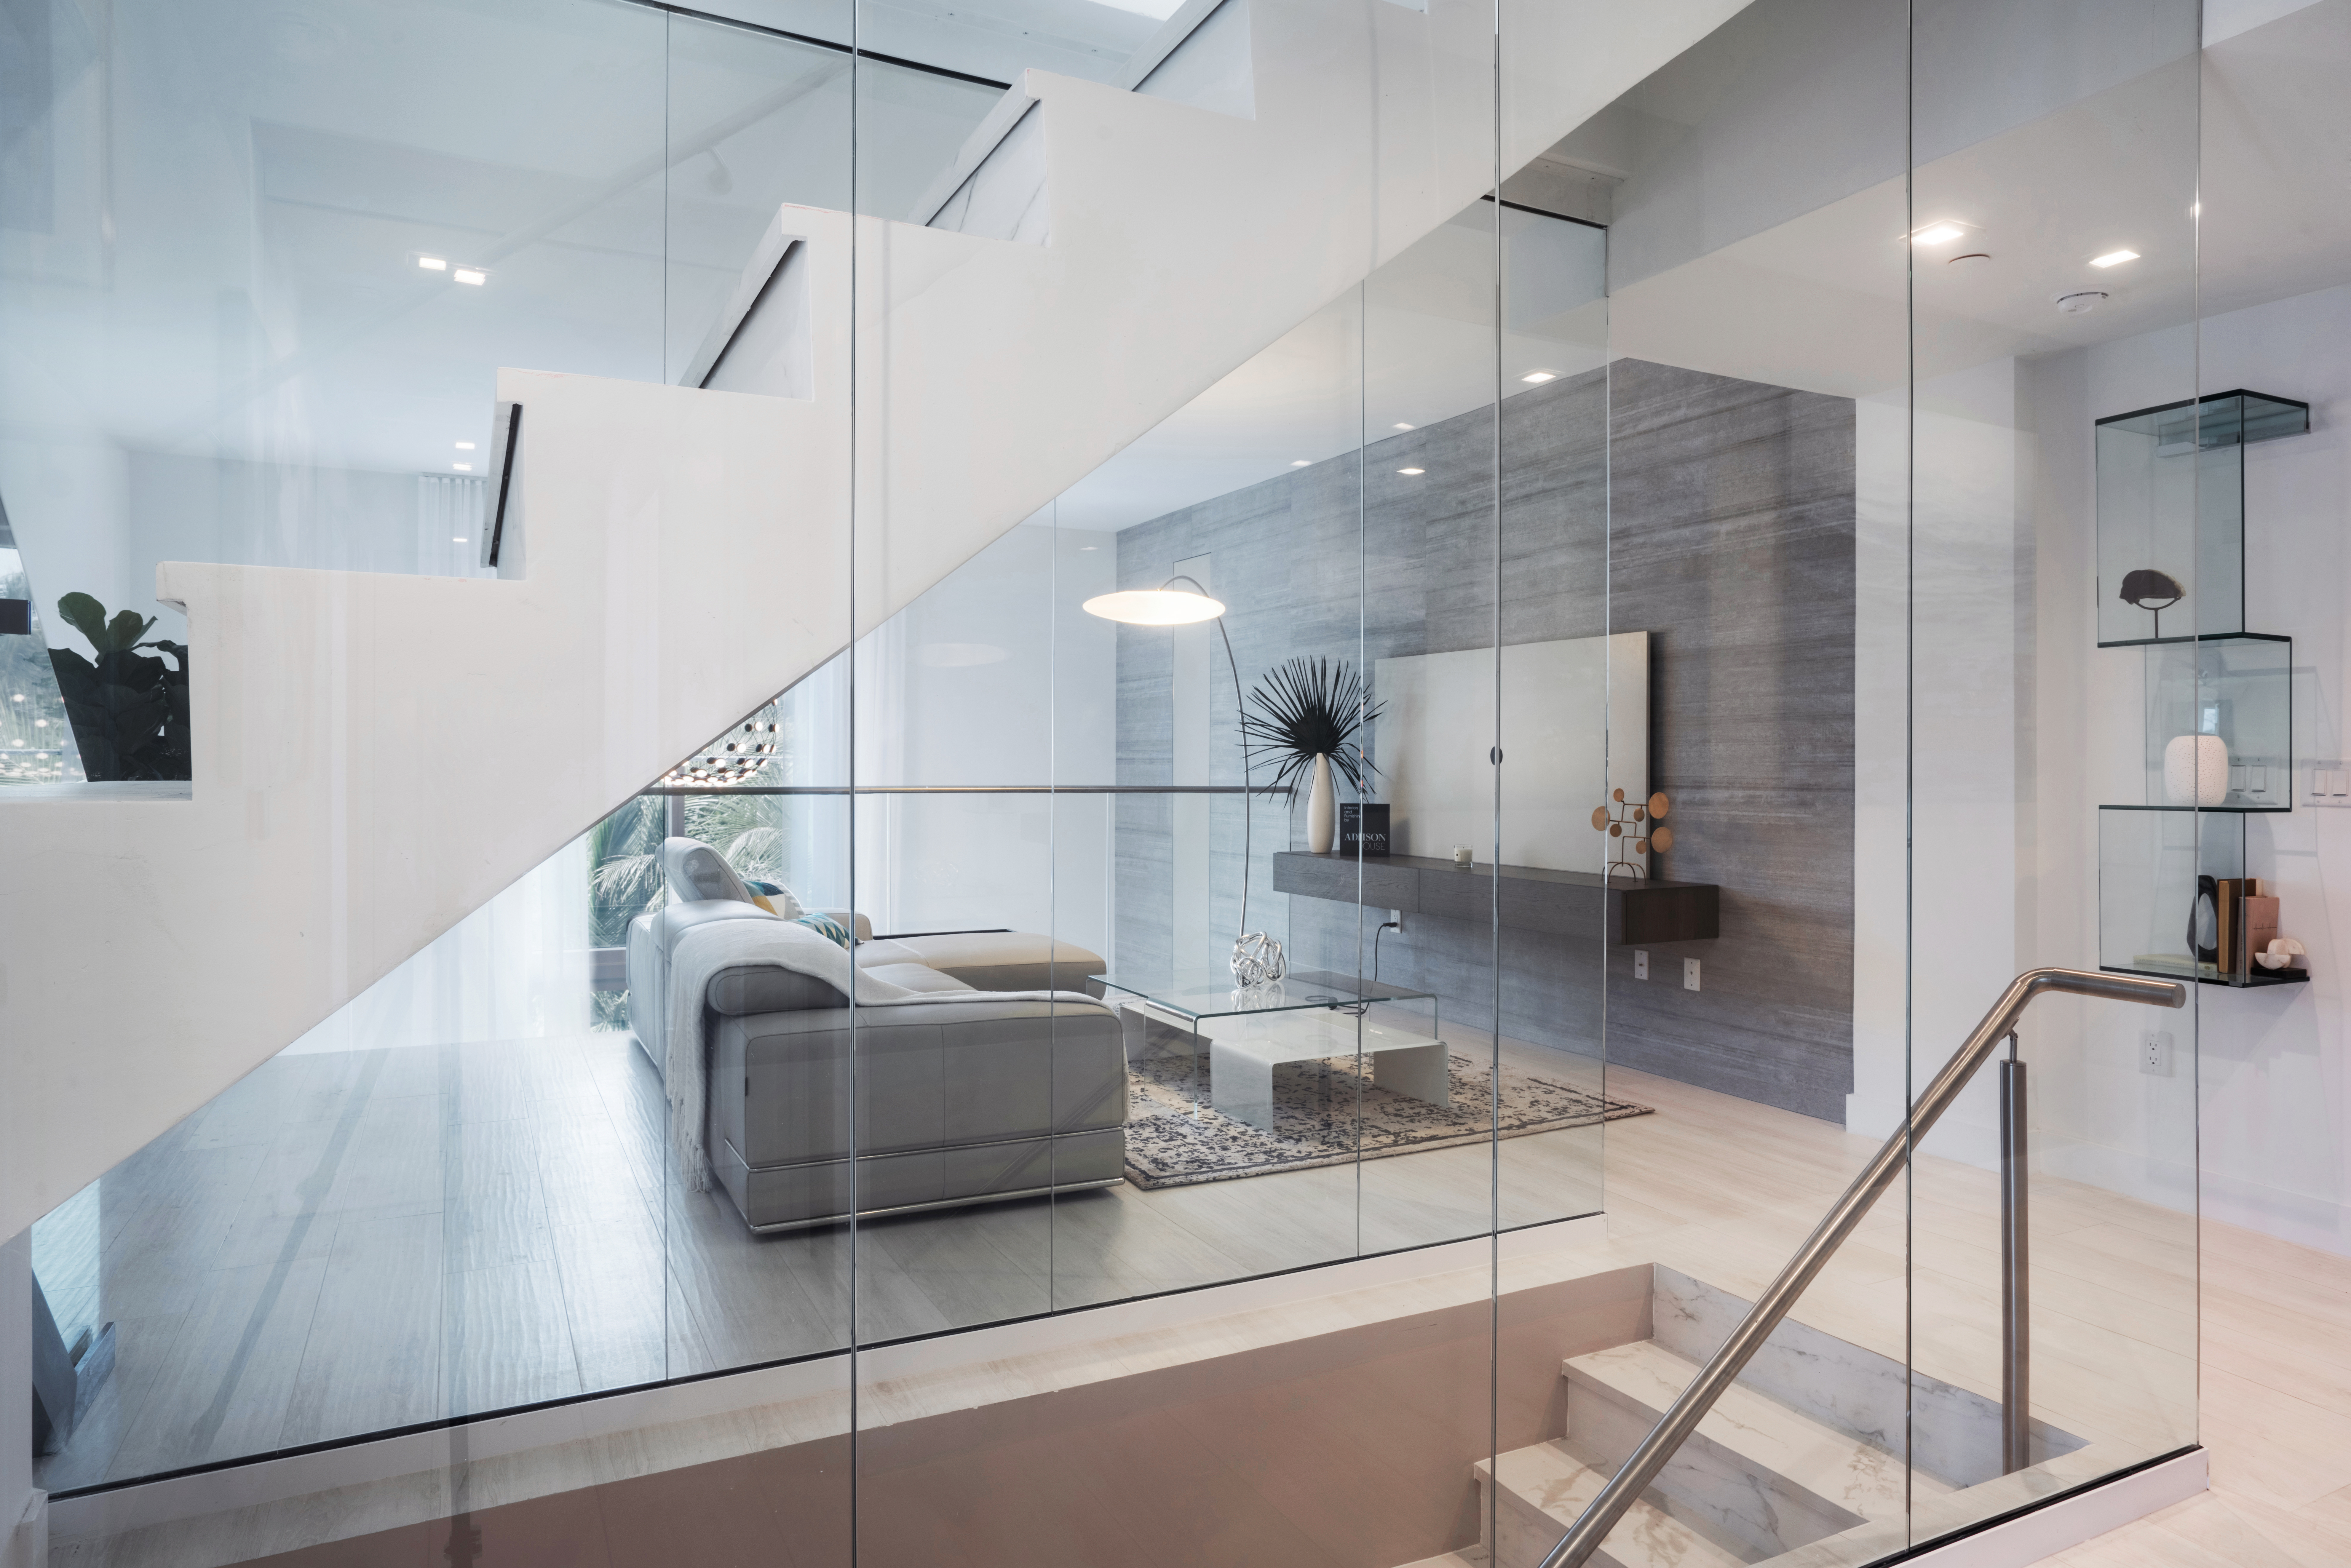 Interior Design Model Homes. Stylish One Bay Residences is Coming to the Design District  Curbed Miami Look inside a sleek model home at in